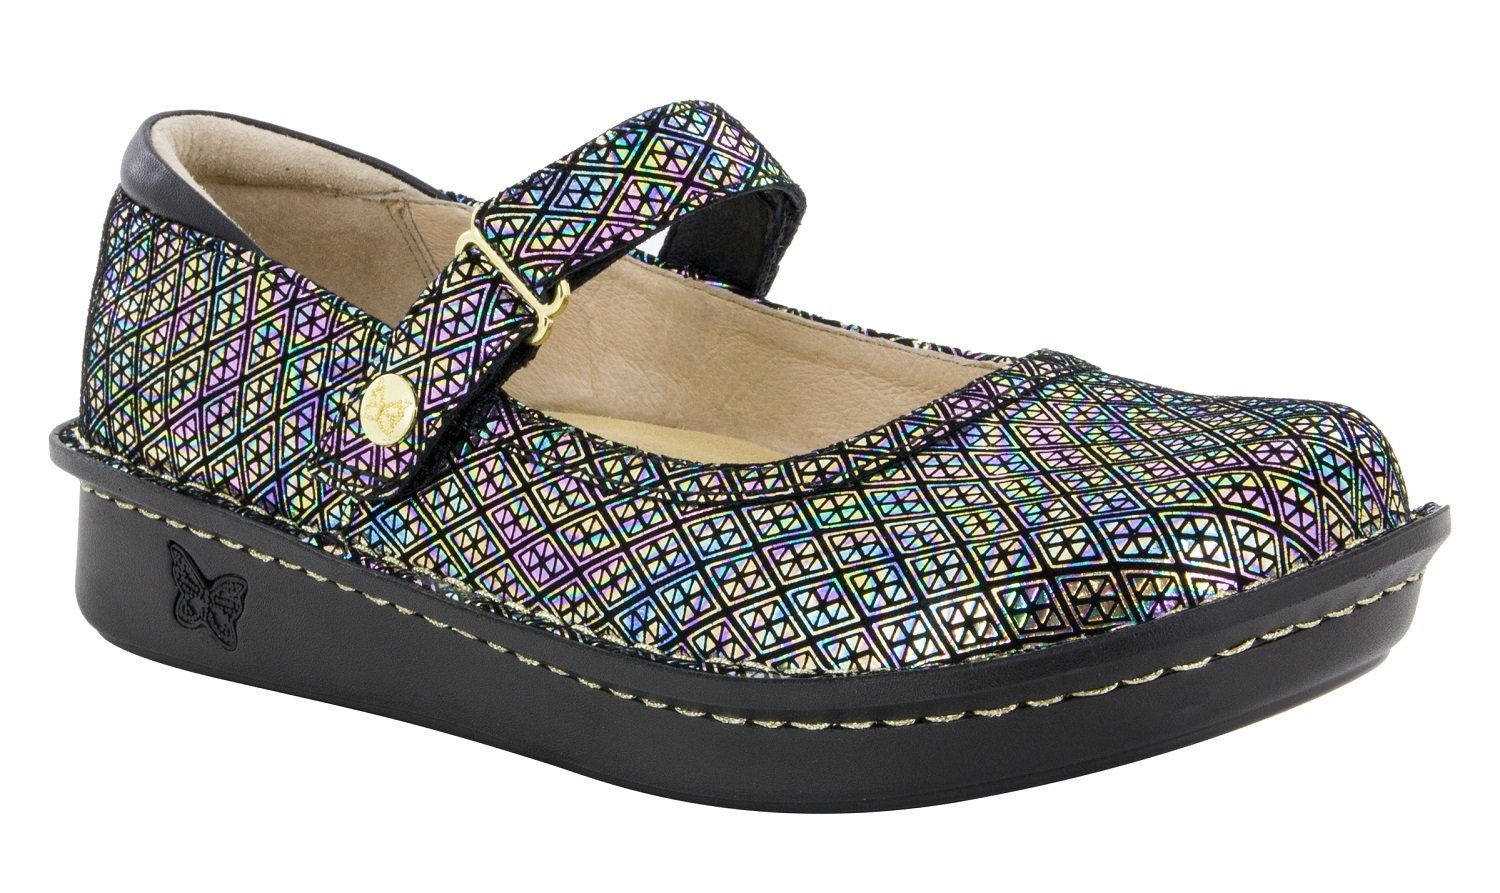 Alegria Women's Belle Mary Jane Flat B075J124SZ 40 M EU|Diamonds Forever